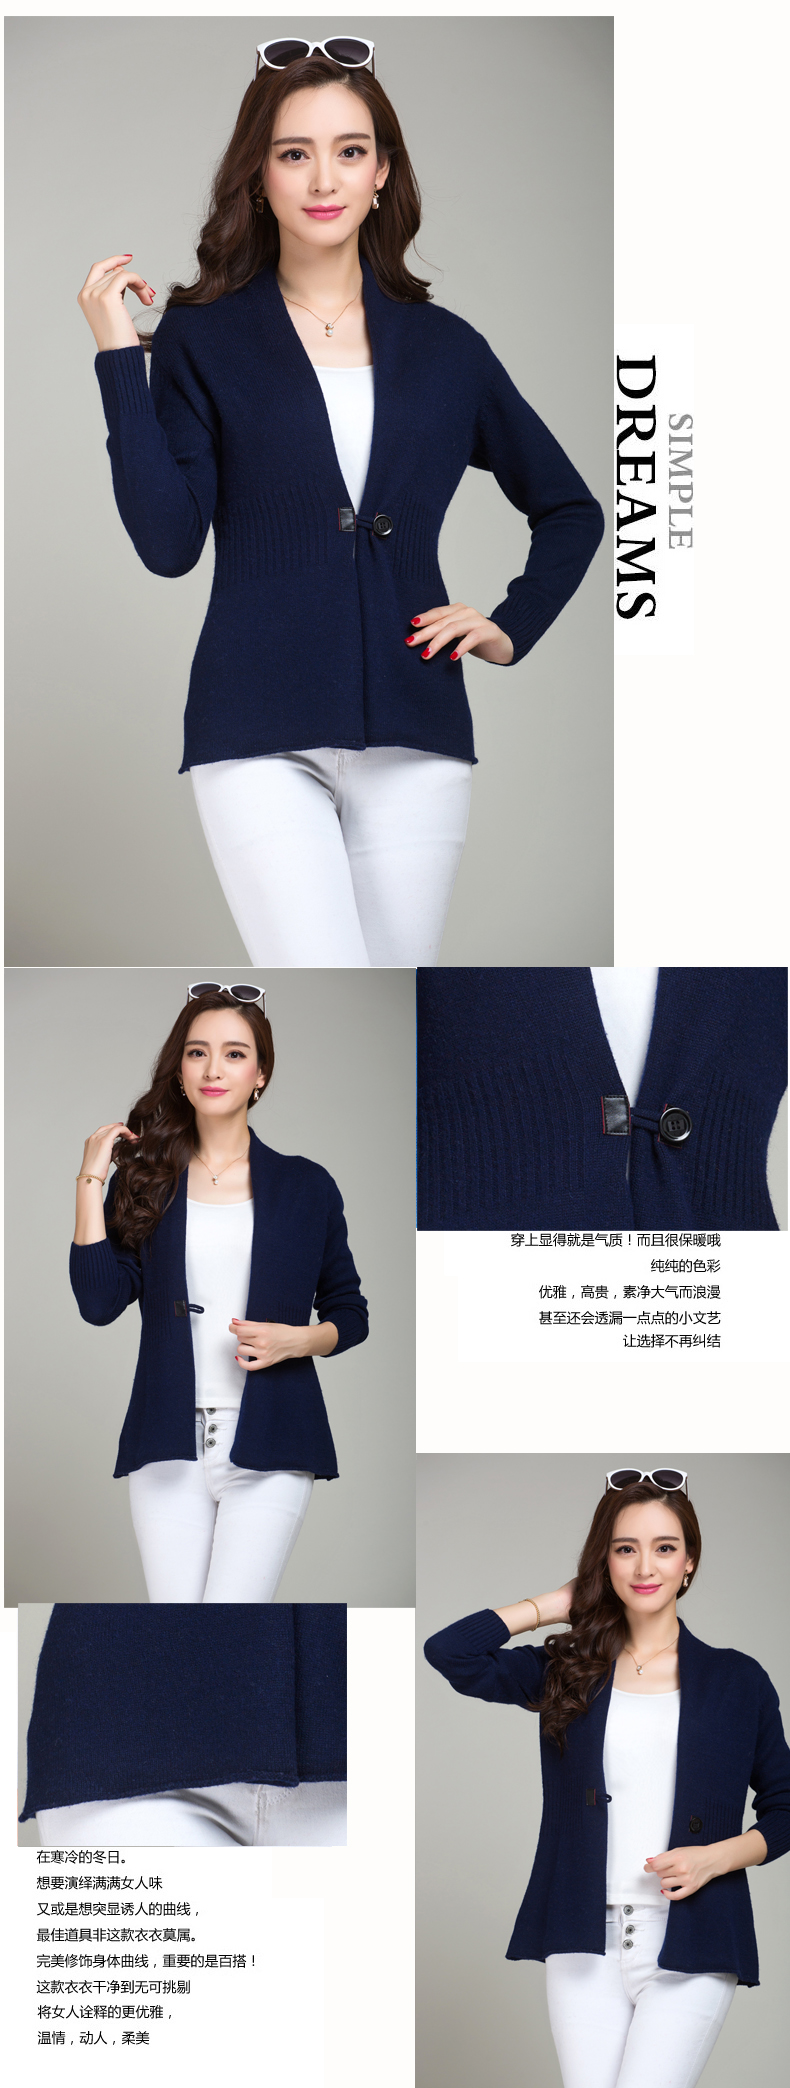 ebd9b03015 2018 2017 Women s Long Sleeve Knitted Cashmere Cardigan Sweater ...